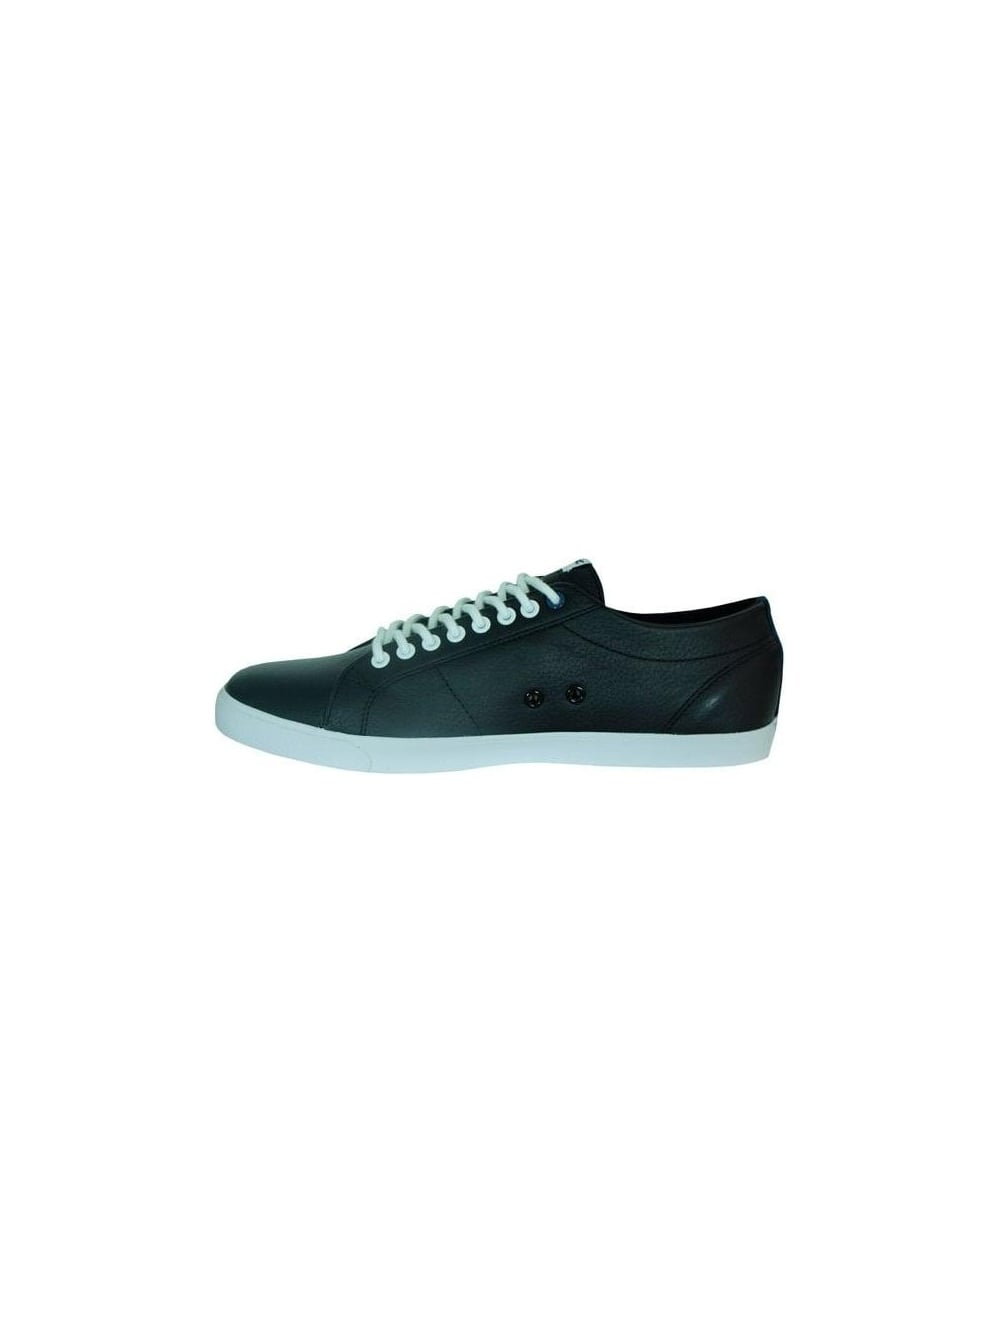 c71e3965ee70bd Lacoste Marcel Leather Trainers in Black White - Shop Lacoste at ...